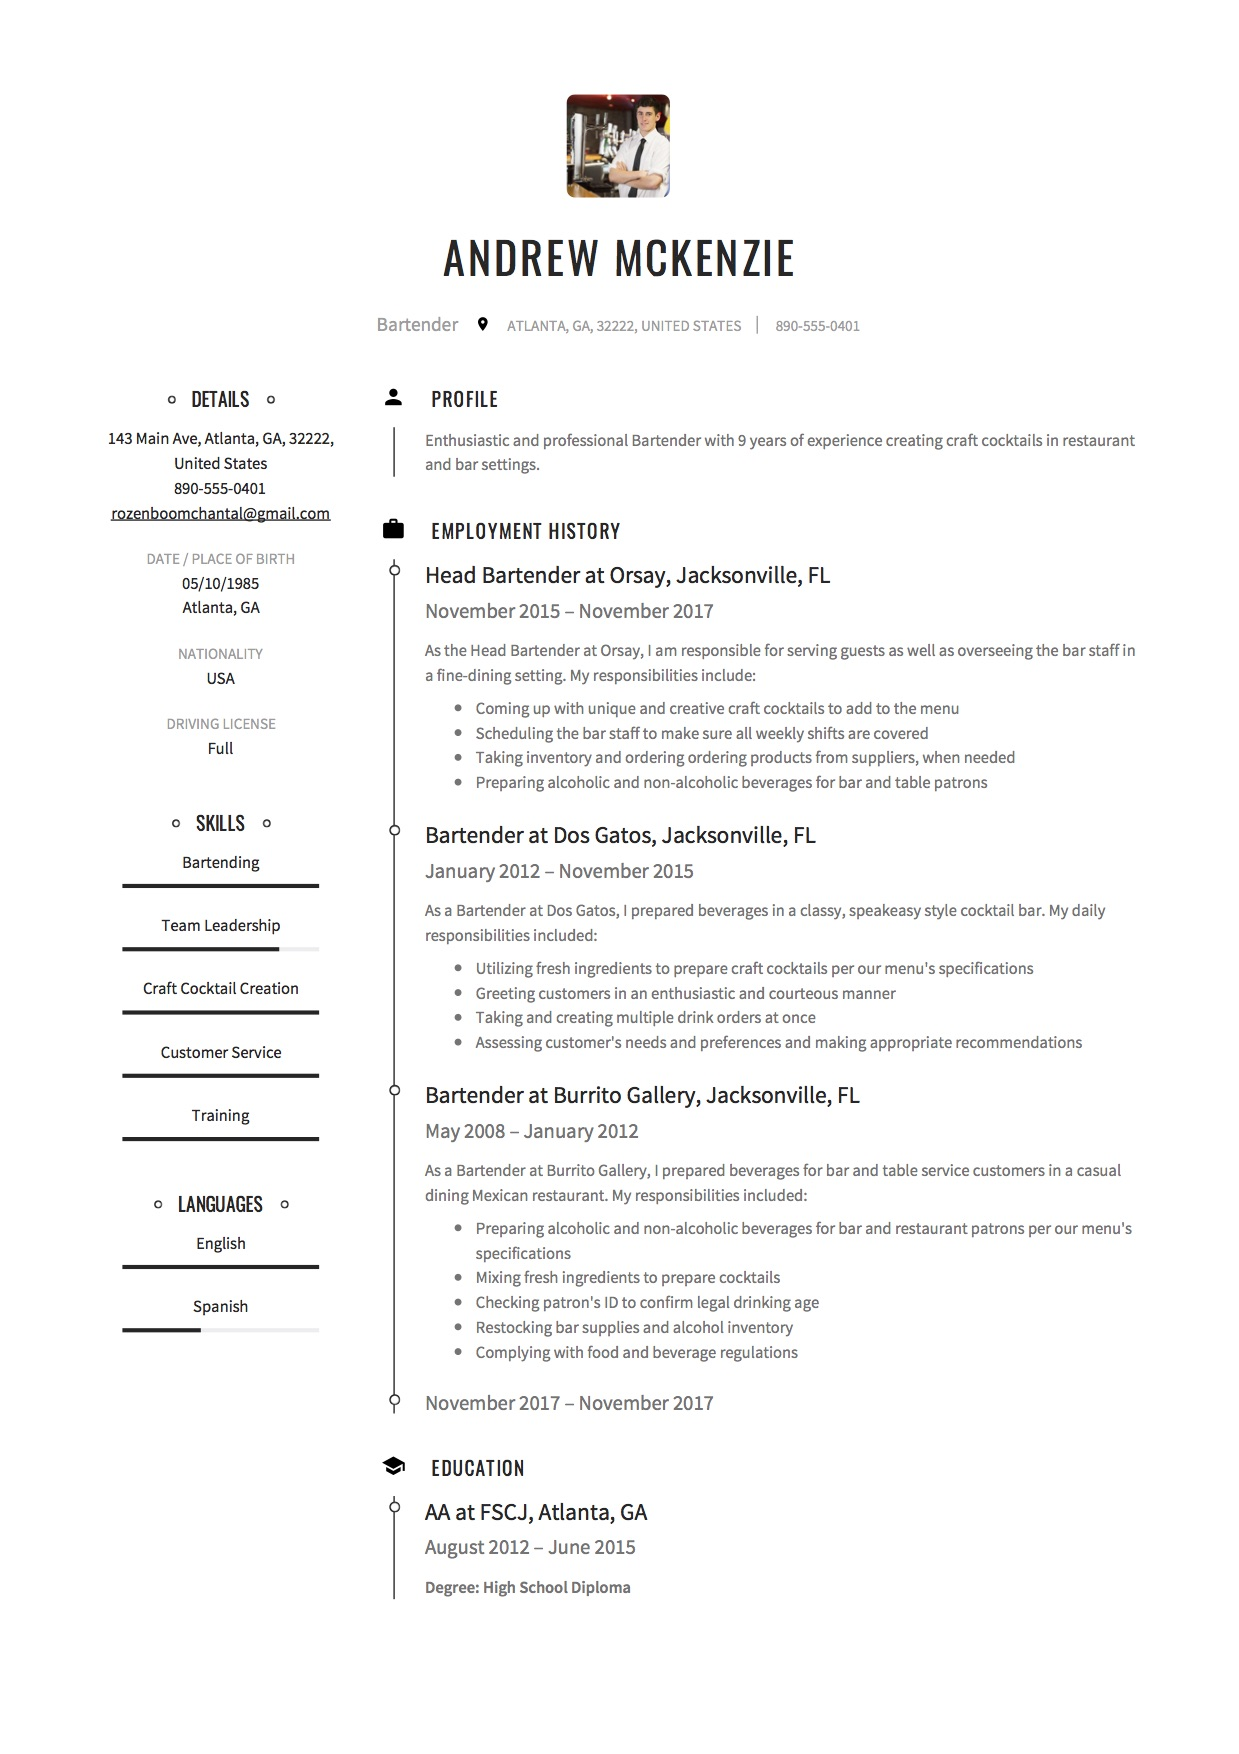 beaufiful bartender resume description images gallery   nice impressive bartender resume sample